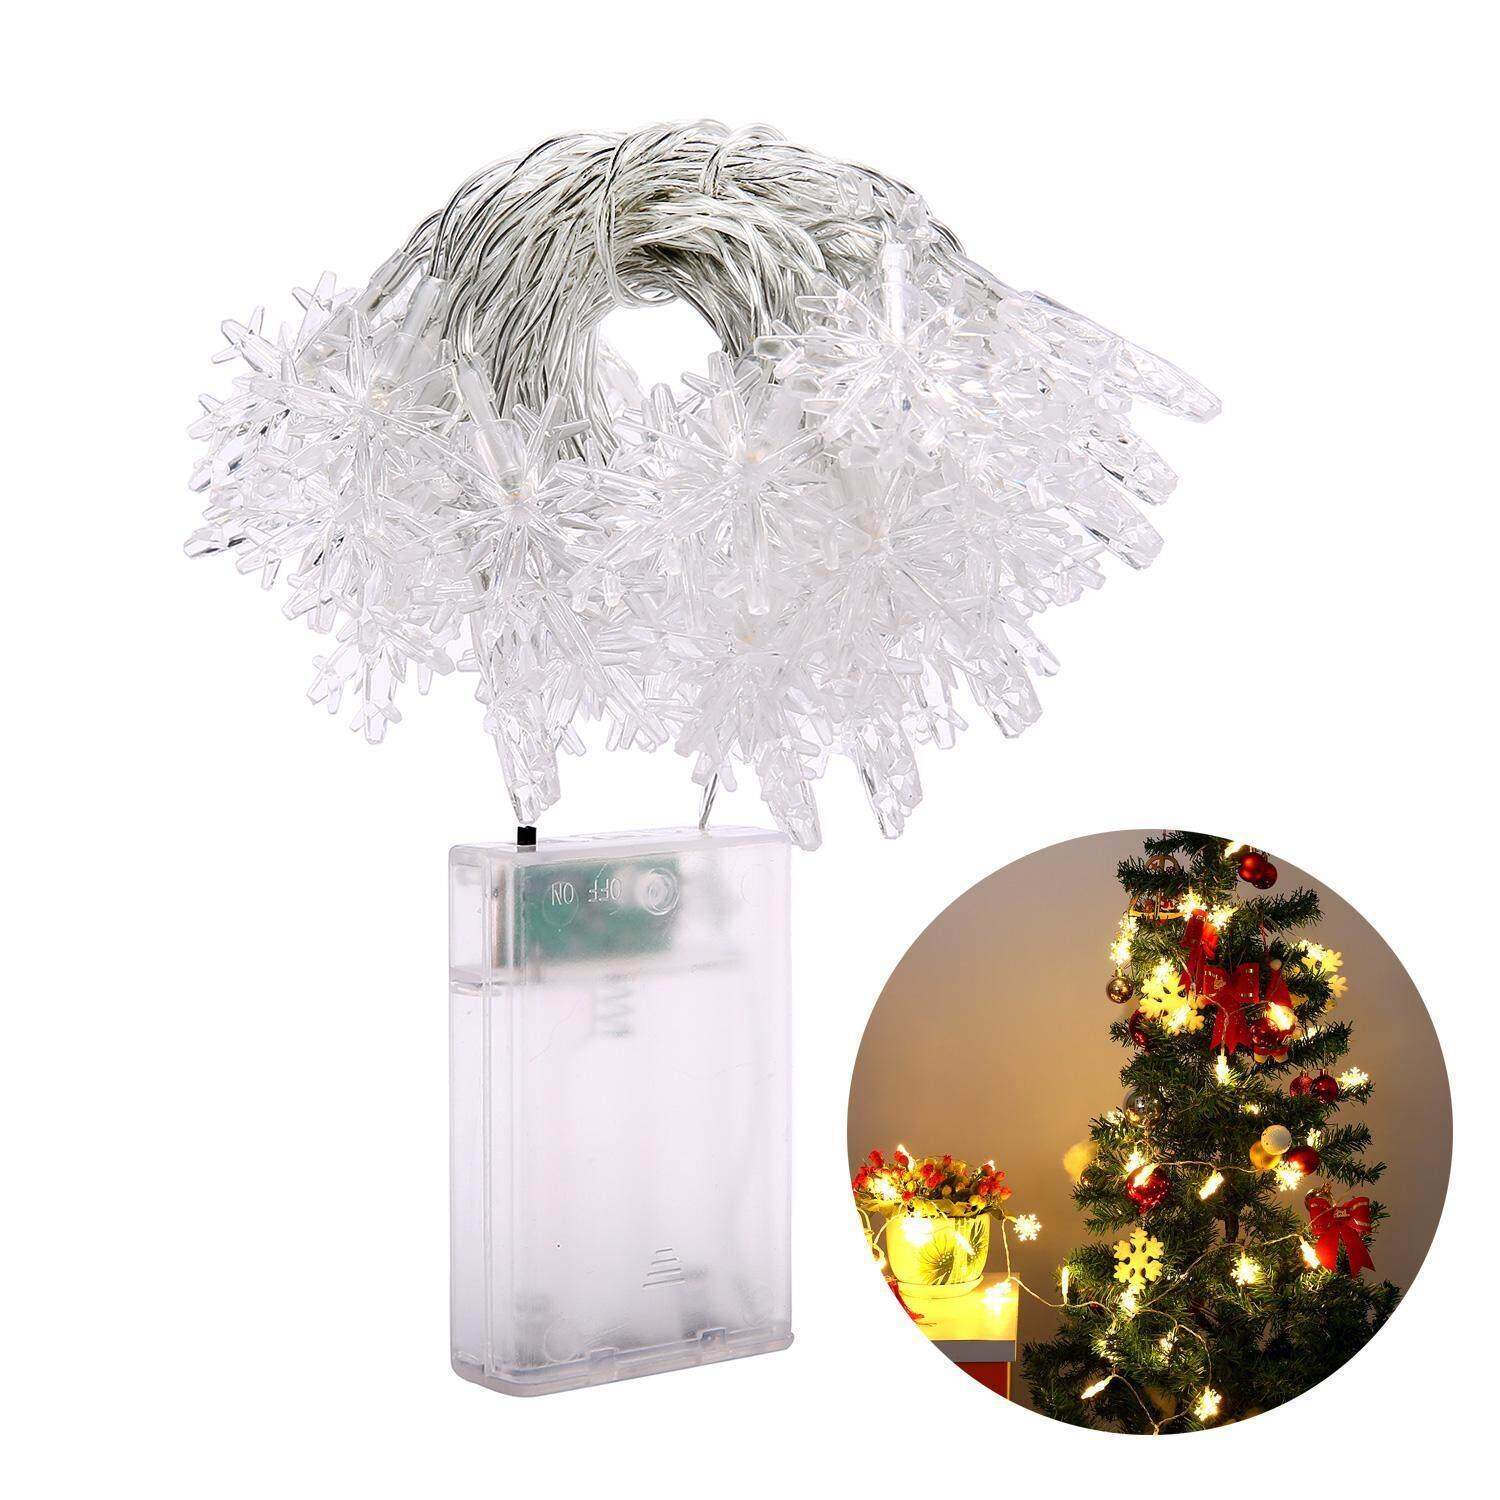 YJJZB 5 M 50 Leds Snowflake String Light Battery Operated Fairy Lights Christmas Party Wedding Decorations